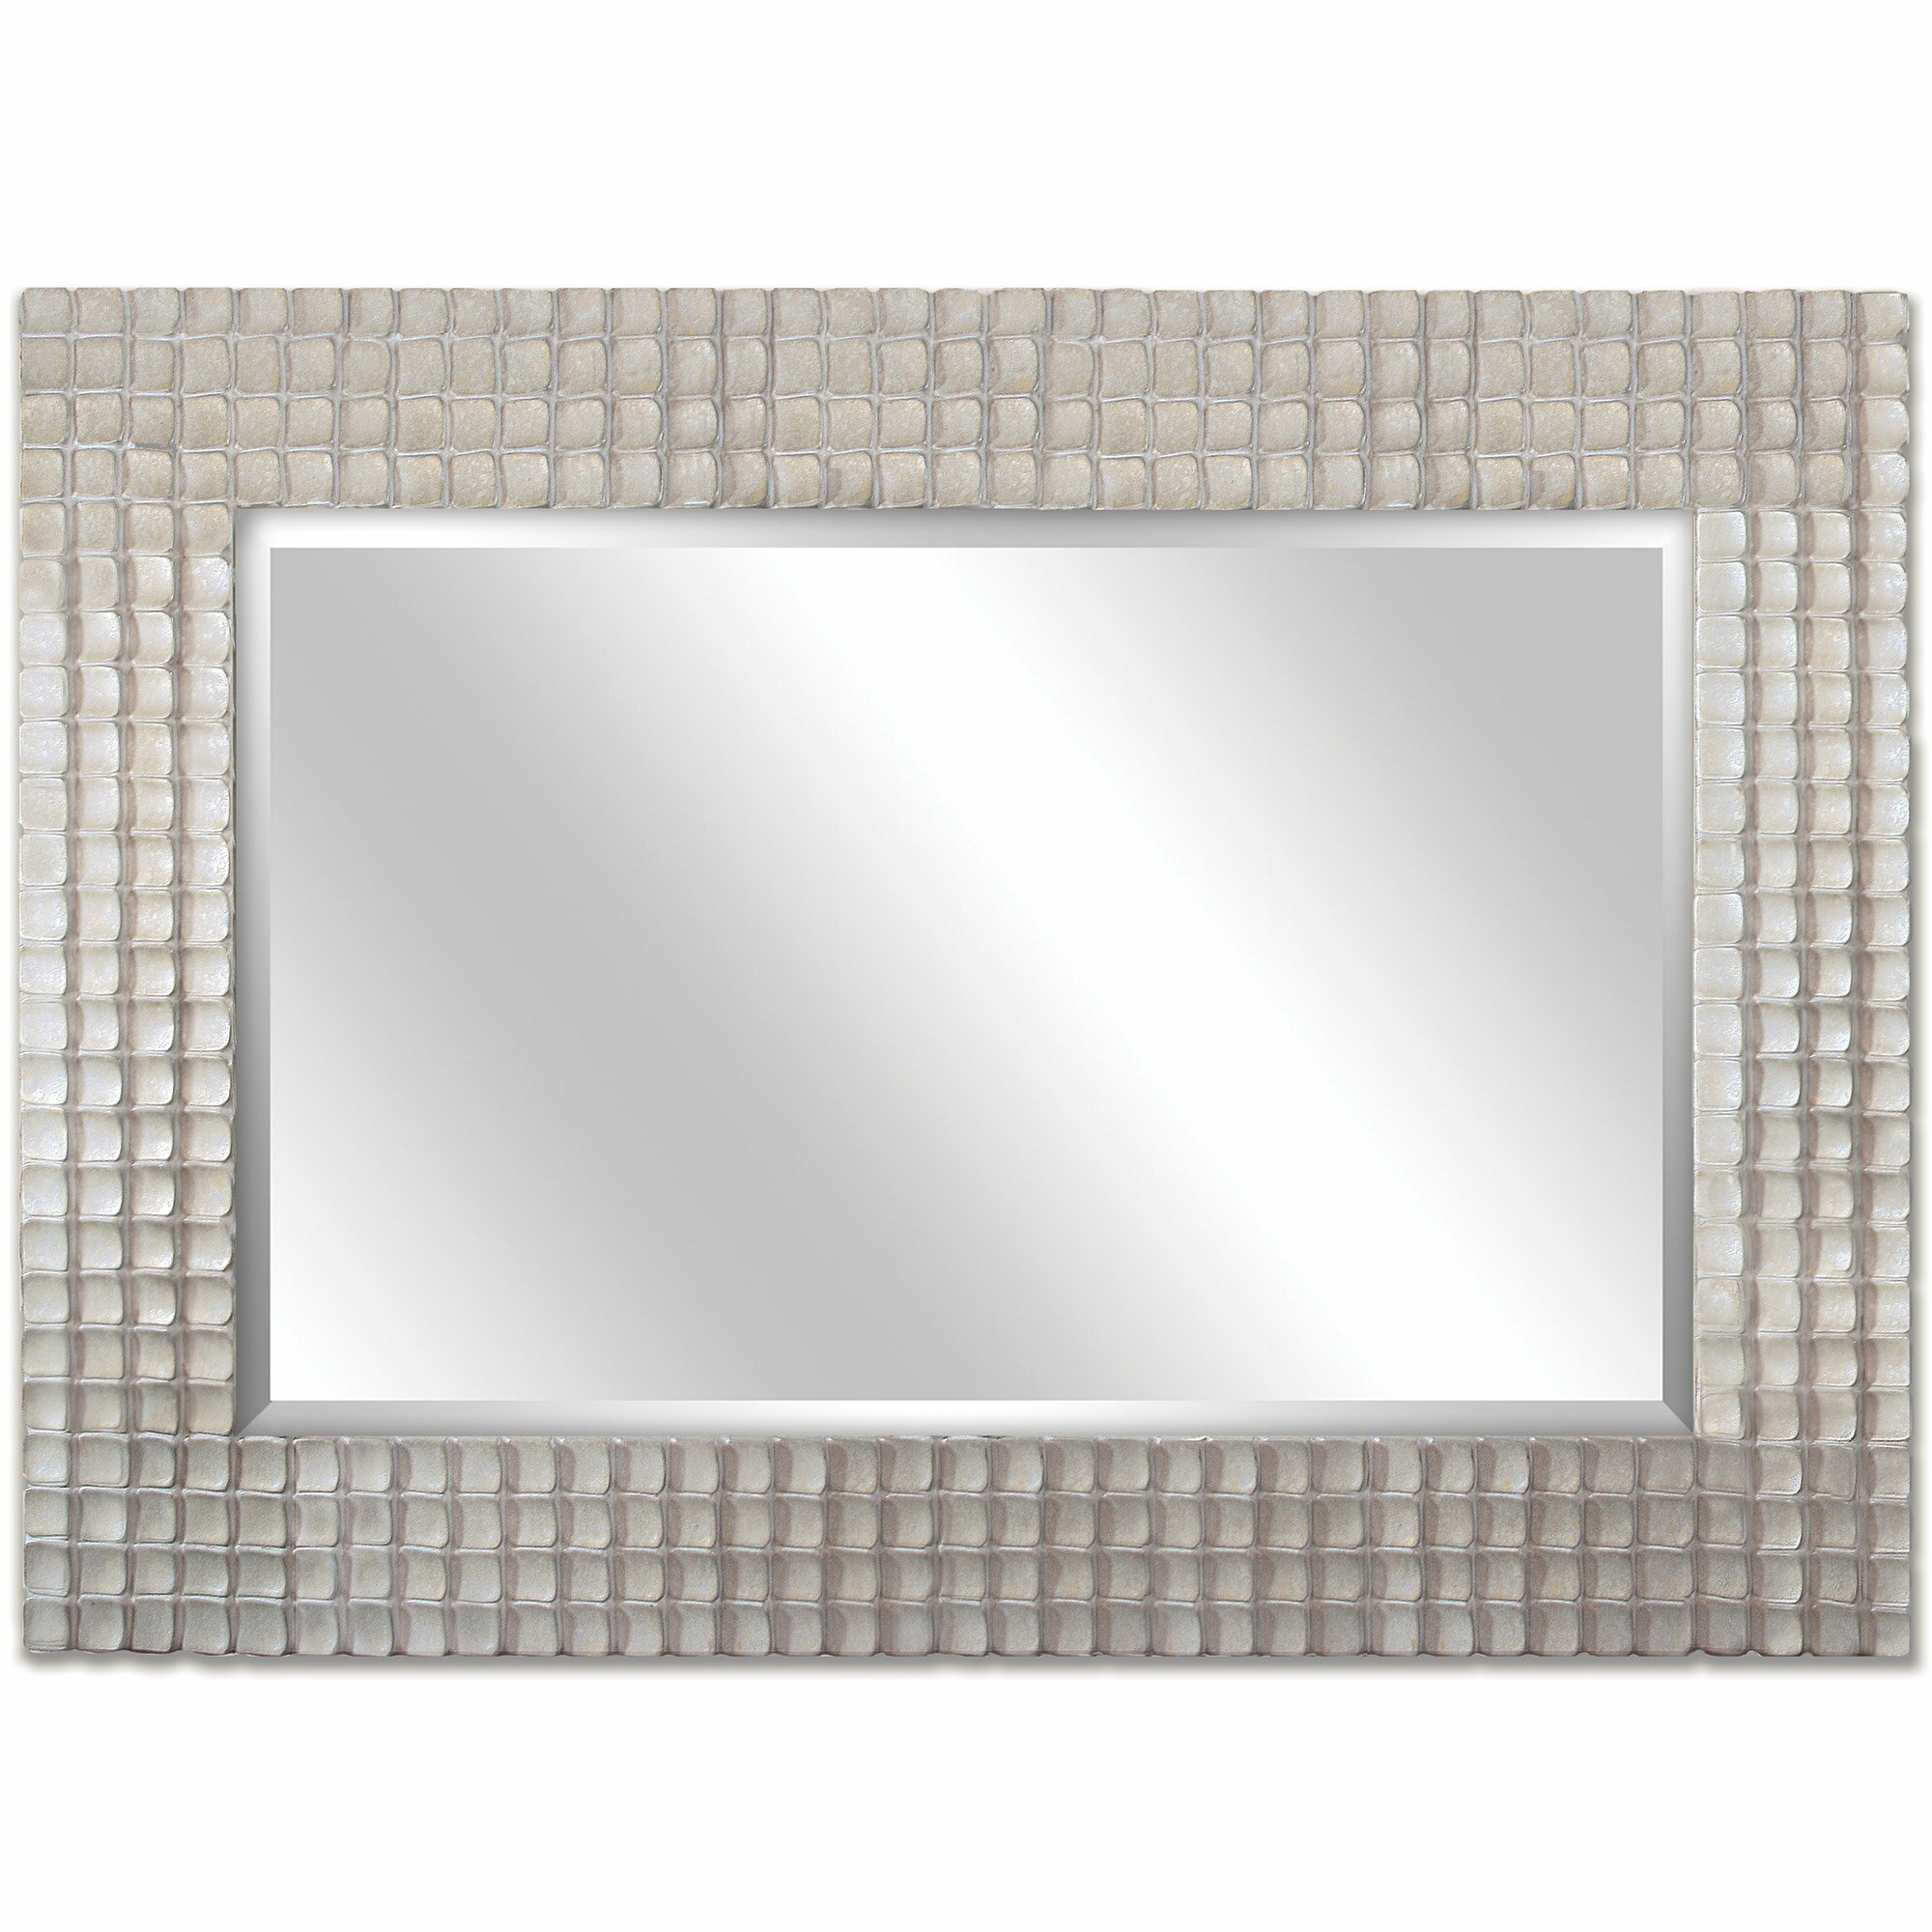 Yosemite home decor framed wall mirror reviews wayfair for Mirror 120 x 60